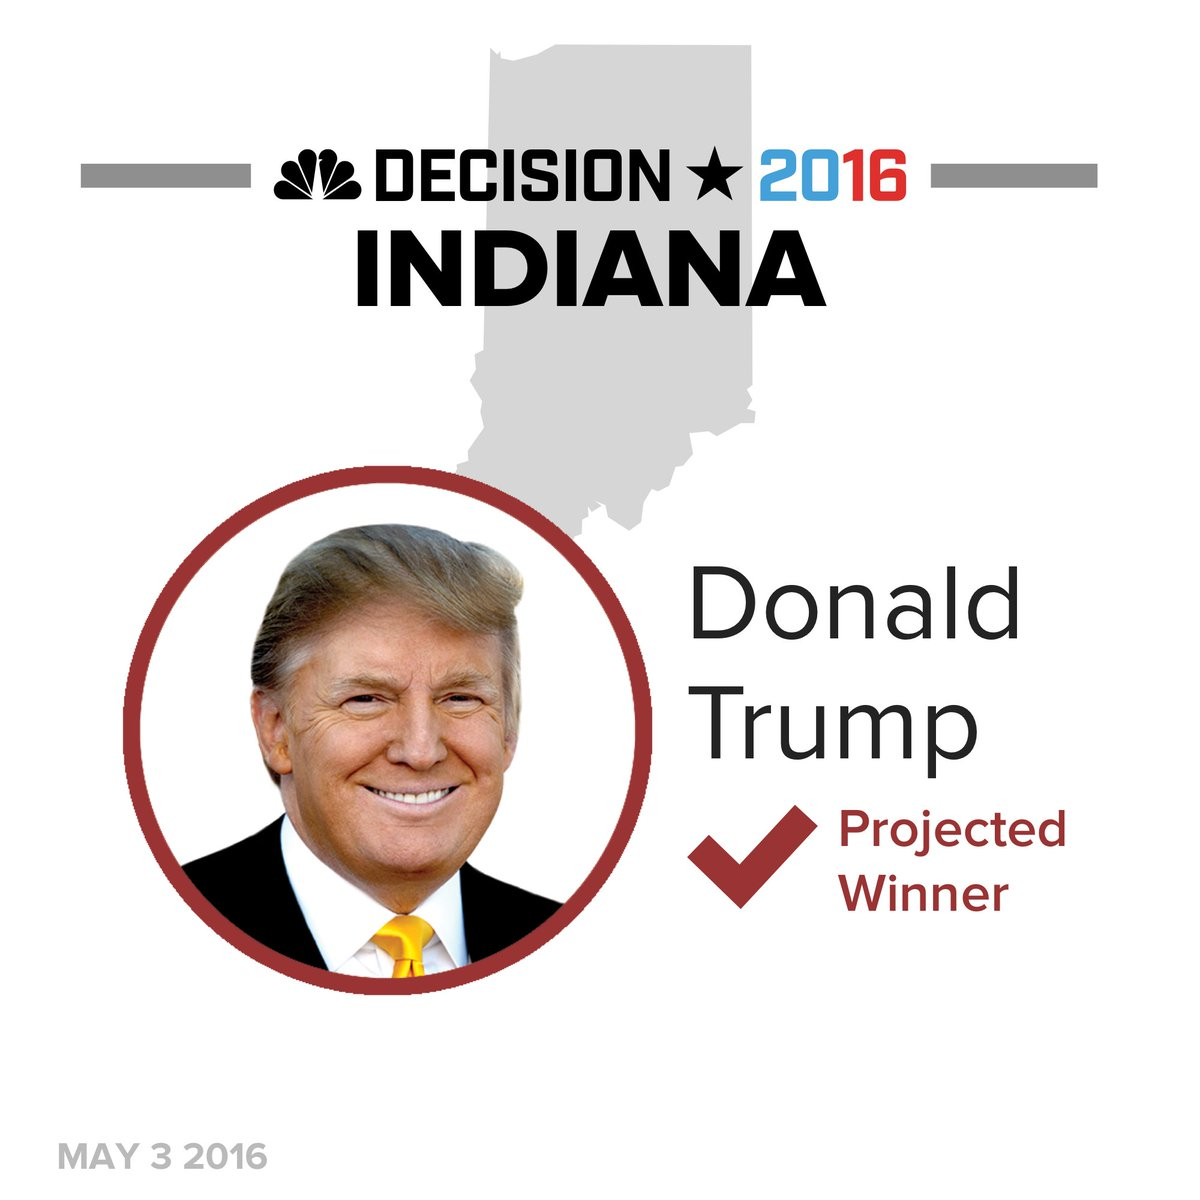 Donald Trump wins YUGE in Indiana GOP primary